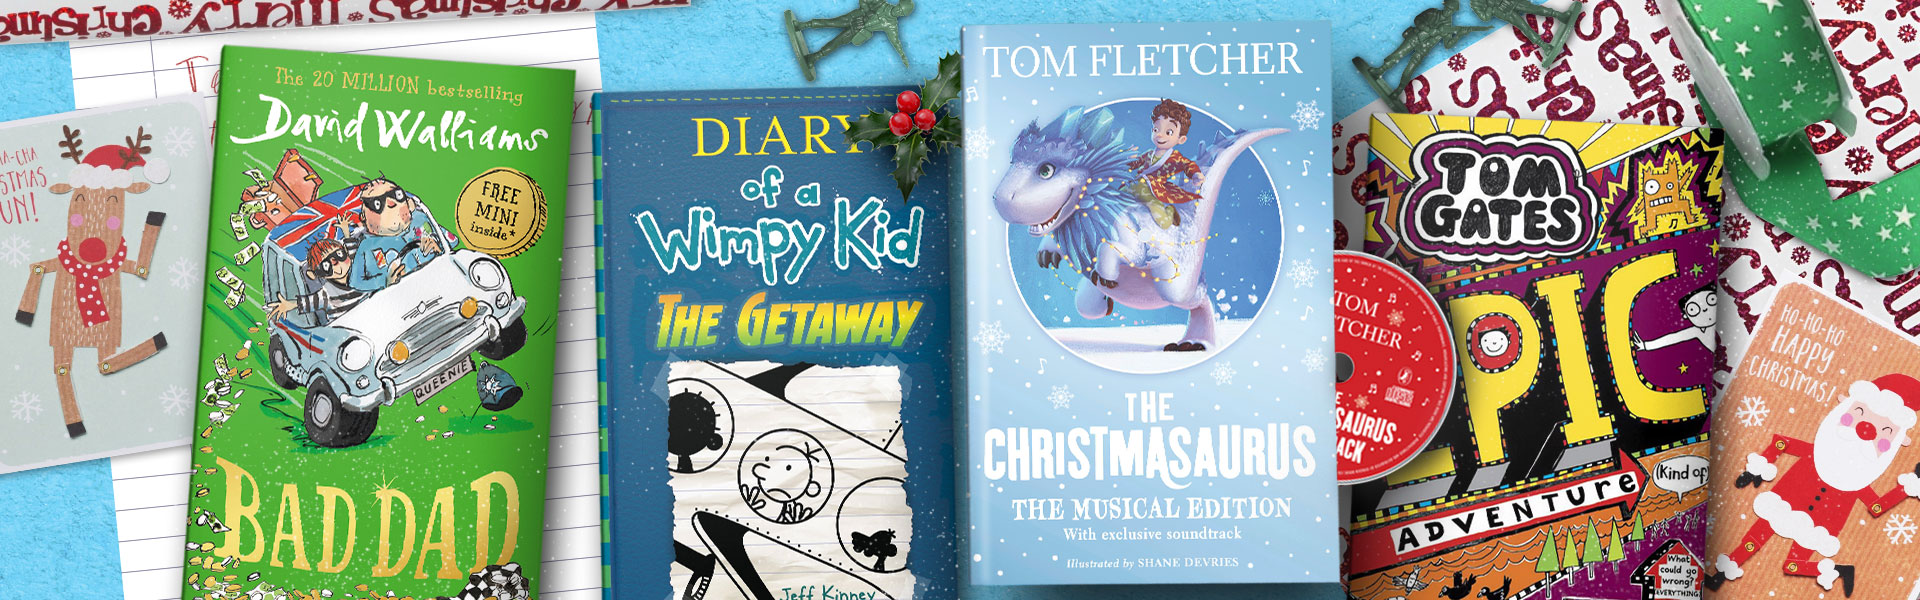 Roald dahl archives whsmith blog our christmas top picks childrens books solutioingenieria Choice Image